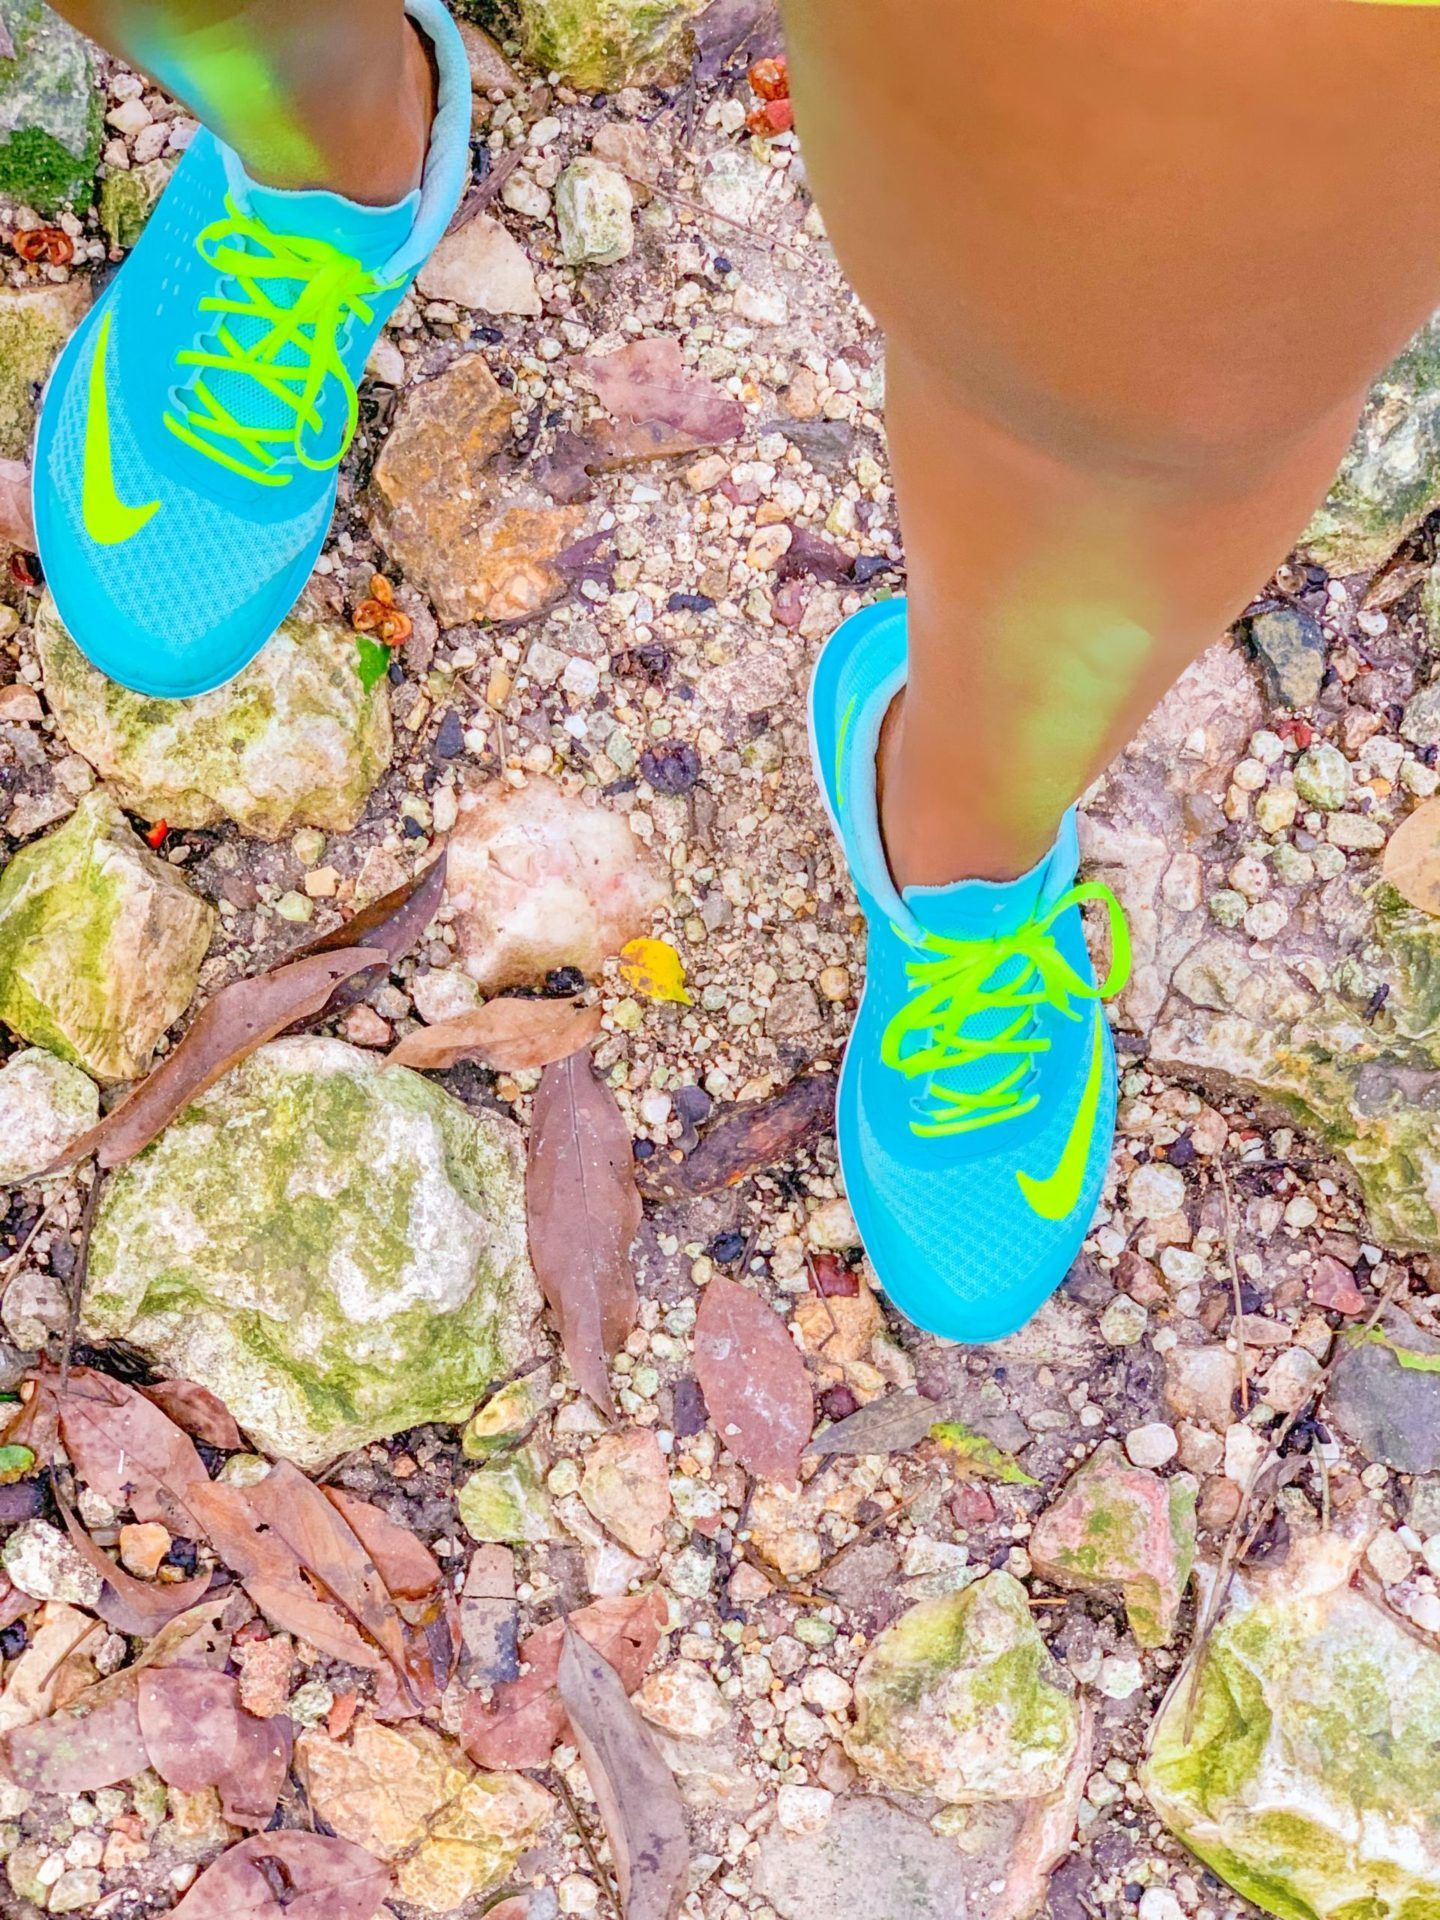 Nike Just Do It - Hiking In Belize